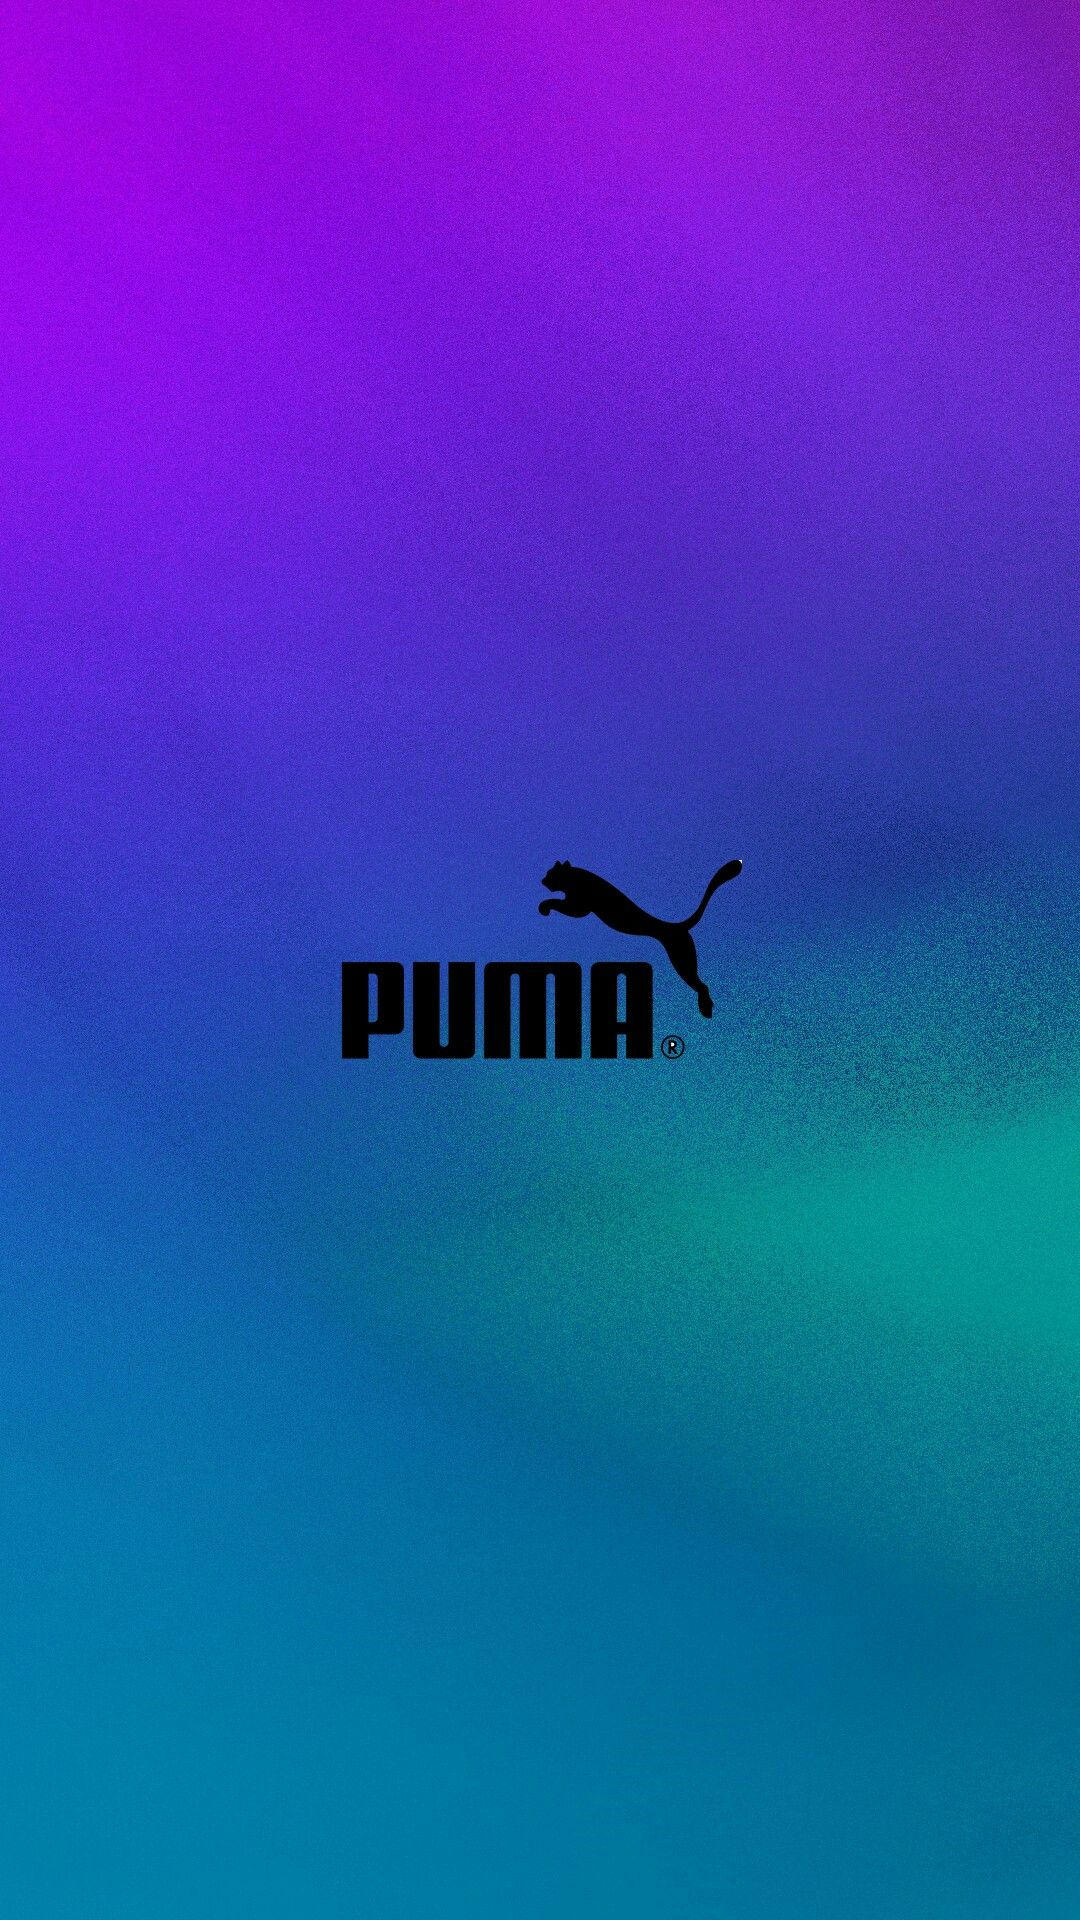 Pin de NikklaDesigns en Puma Wallpaper Fondos de